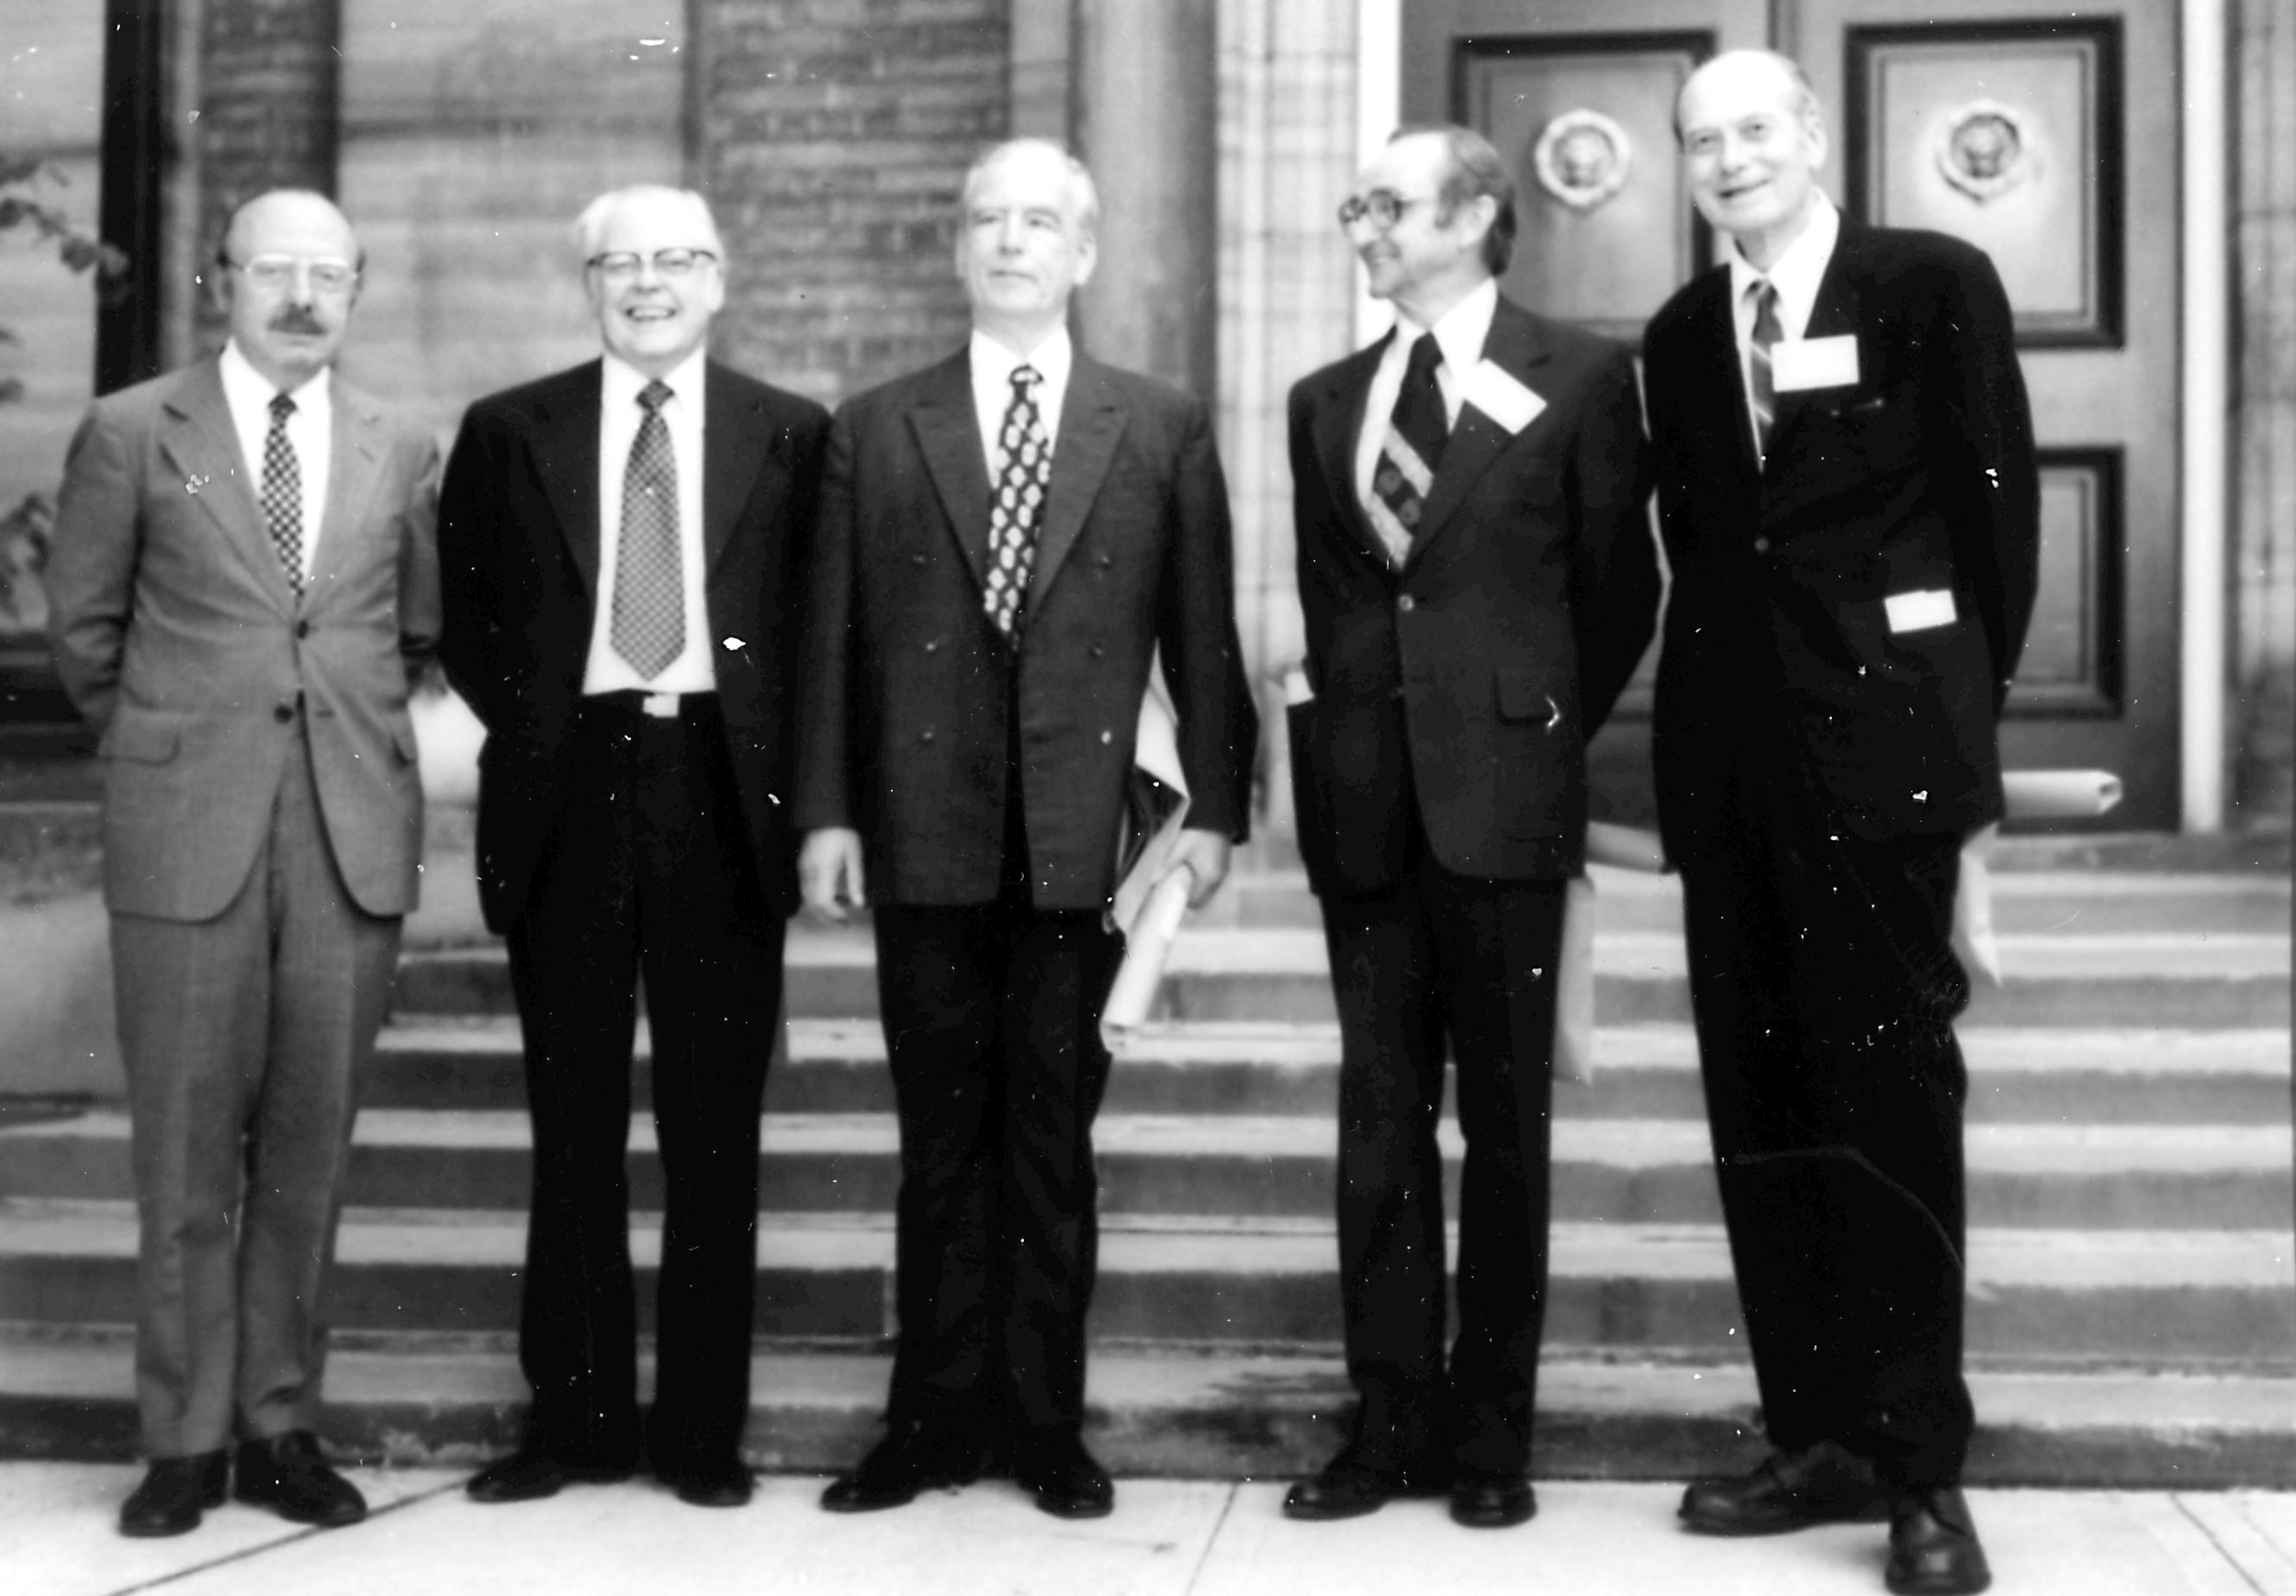 Figure 6: (From left to right) Keith Porter, Hillier, Ruska, Prebus, and Hall receives honorary degrees from the University of Toronto for their pioneering work in electron microscopy. (Photo credit: https://www.physics.utoronto.ca/physics-at-uoft/history/the-electron-microscope/Web%20Image_Fig19.jpg)